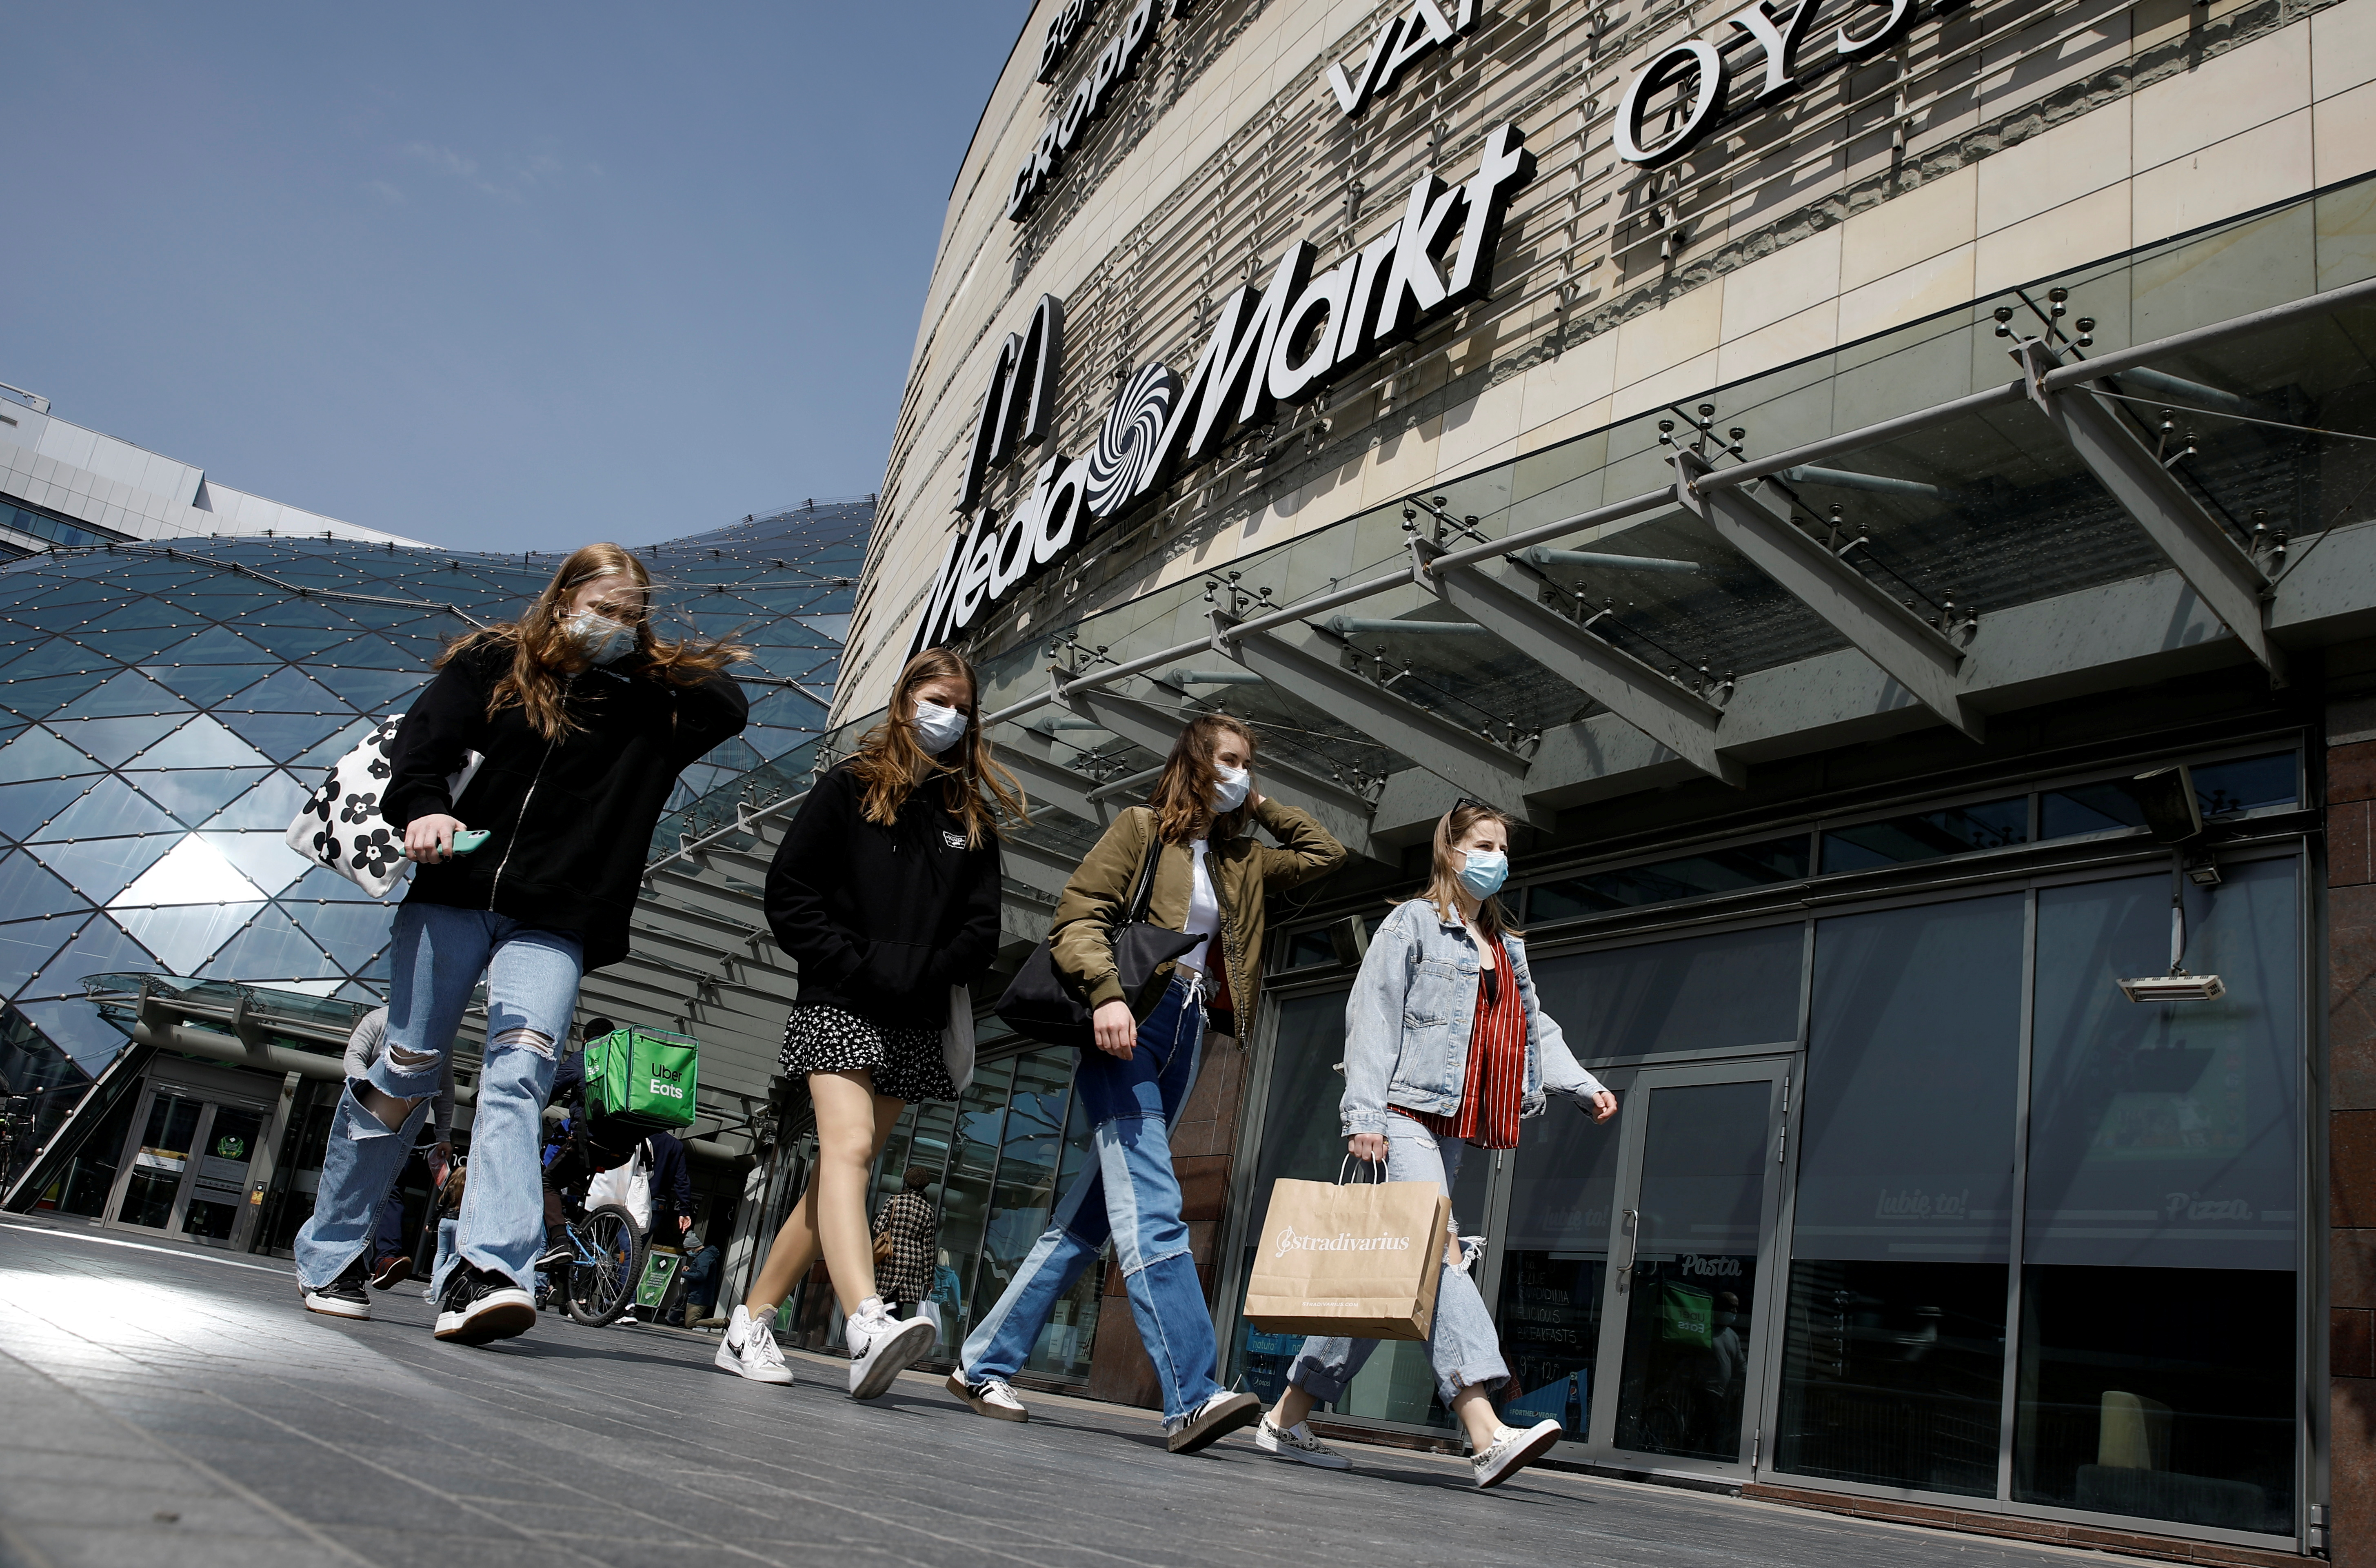 People wearing protecting masks walk in front of the Zlote Tarasy shopping mall in the centre of the city as the government eased coronavirus disease (COVID-19) restrictions, in Warsaw, Poland May 4, 2021. REUTERS/Kacper Pempel